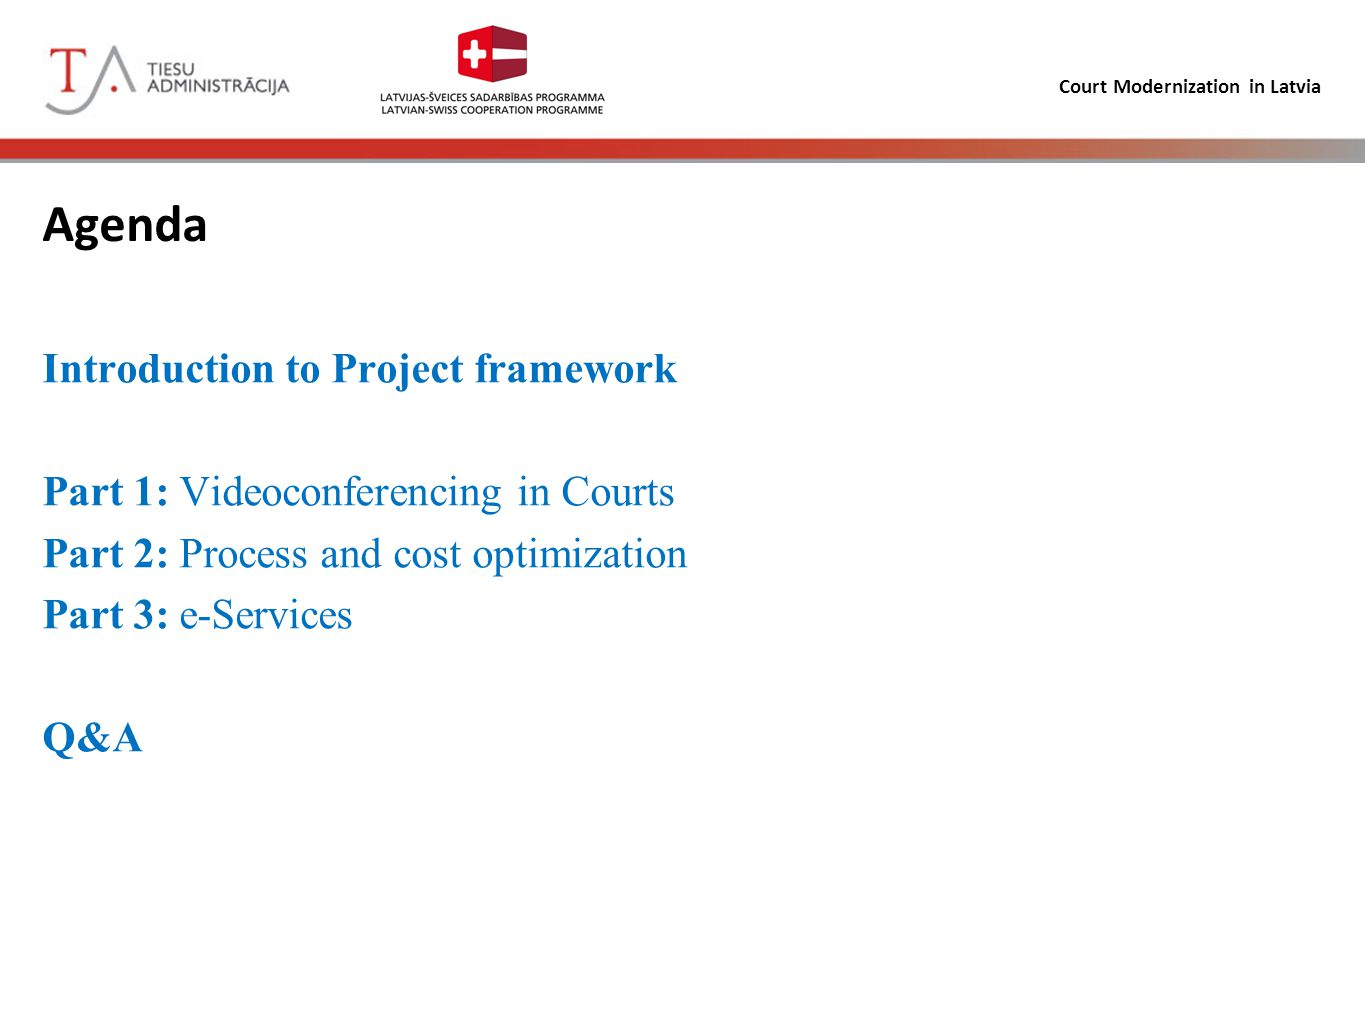 Court Modernization in Latvia Agenda Introduction to Project framework Part 1: Videoconferencing in Courts Part 2: Process and cost optimization Part 3: e-Services Q&A